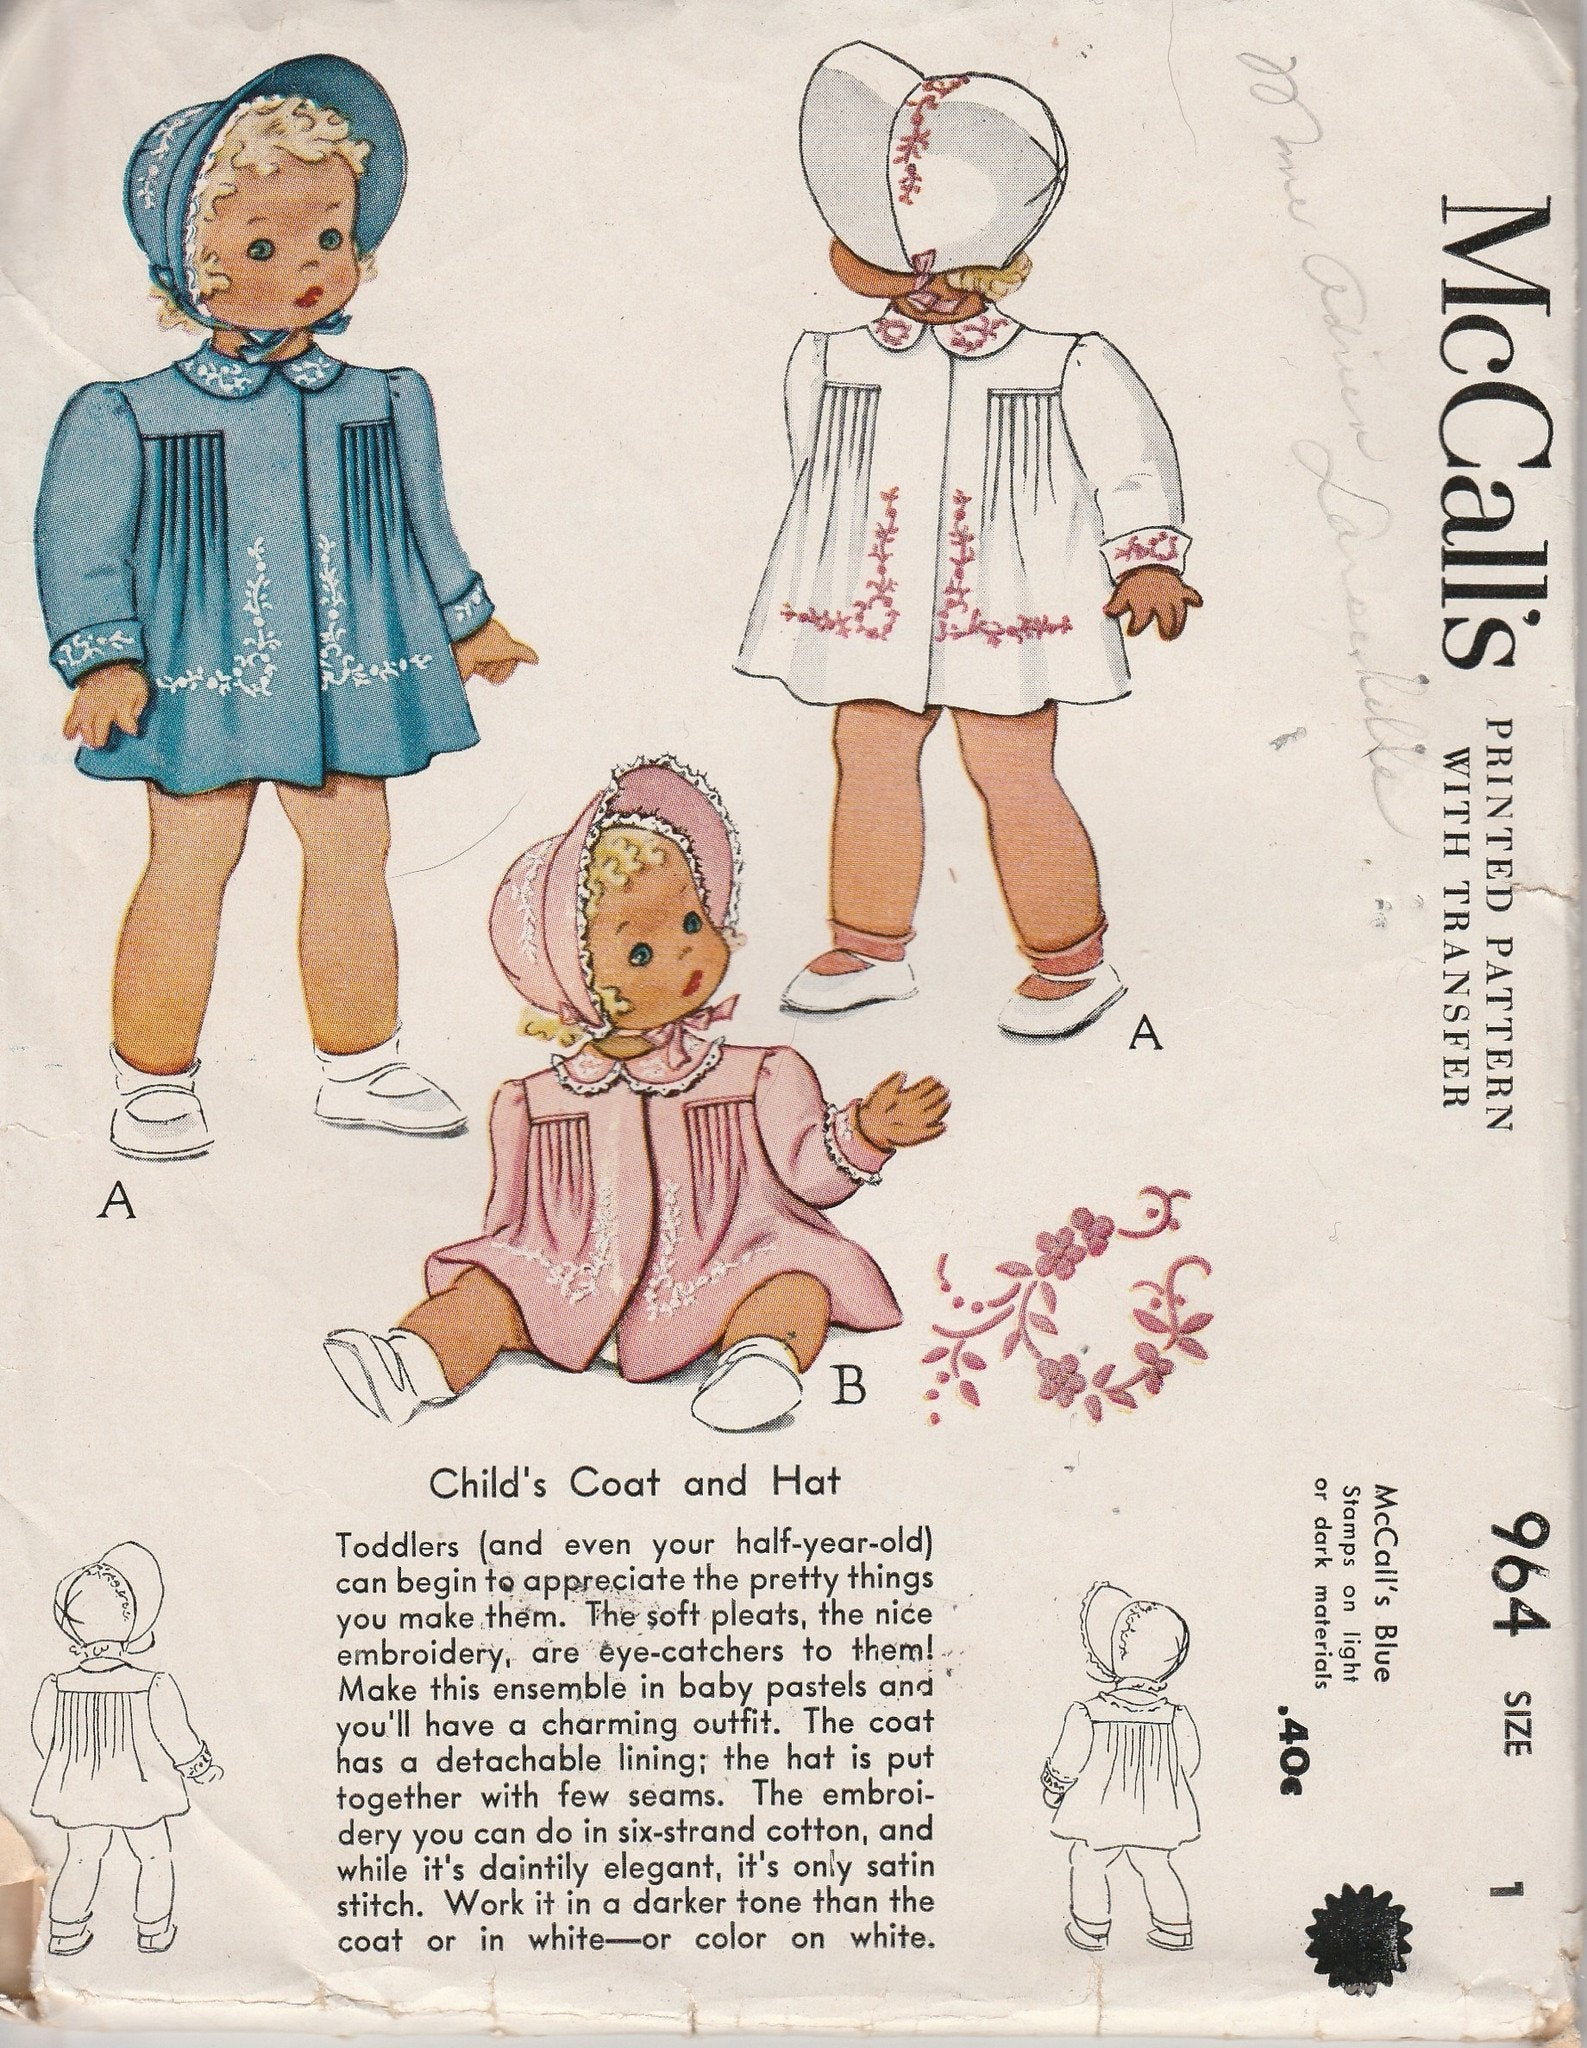 McCall's 964 Toddler Coat Hat Bonnet Vintage 1940's Sewing Pattern Little Girl Baby Infant - VintageStitching - Vintage Sewing Patterns